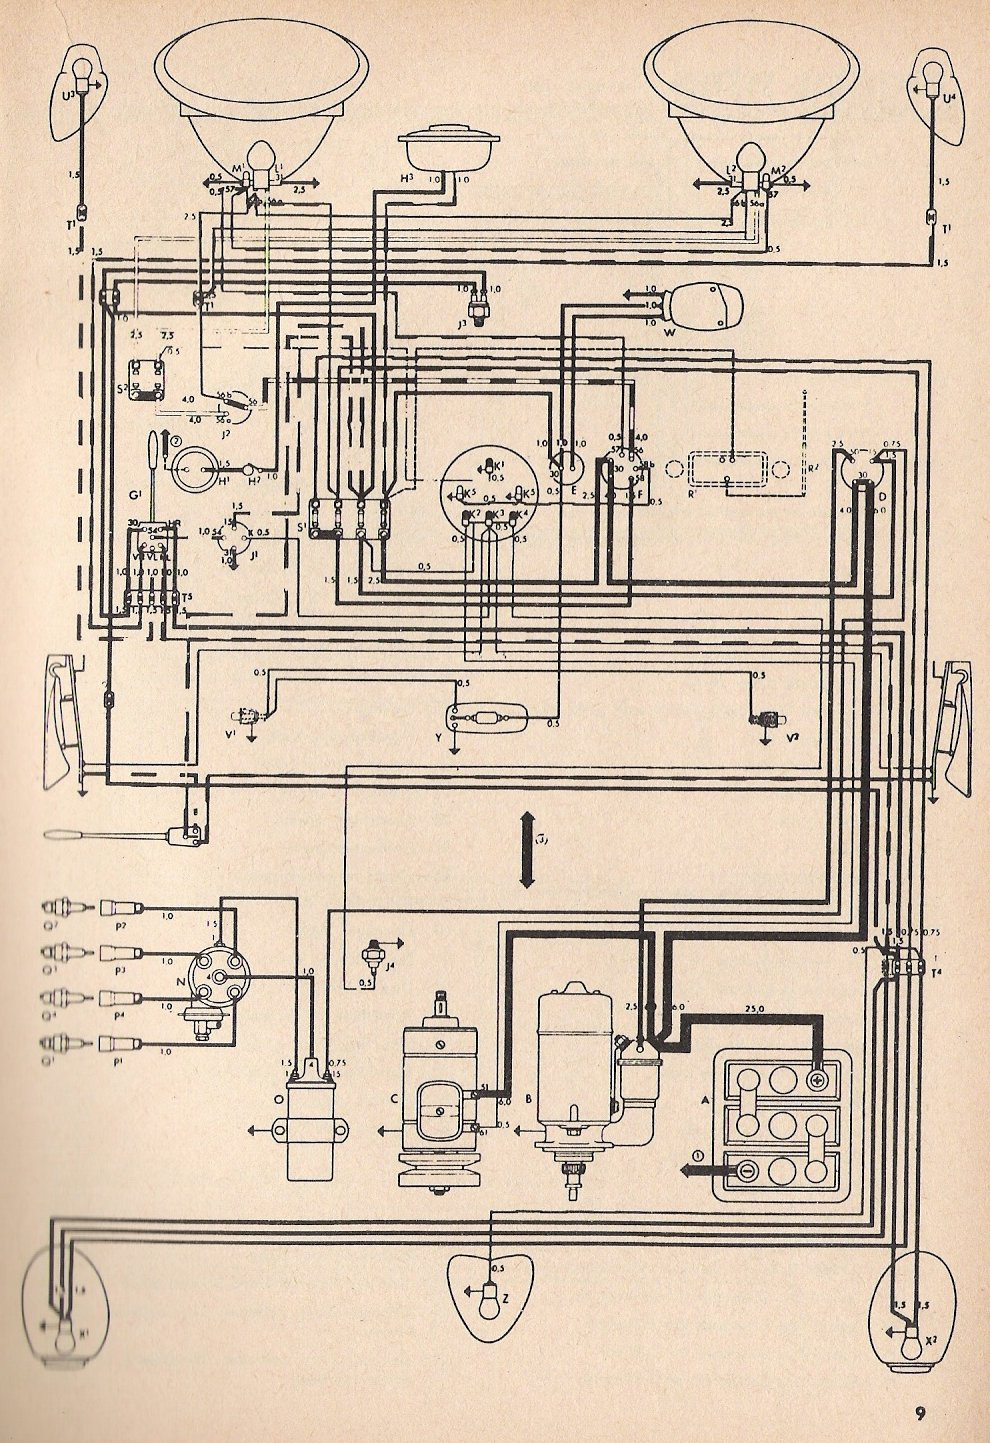 71 Charger Wiring Diagram Library